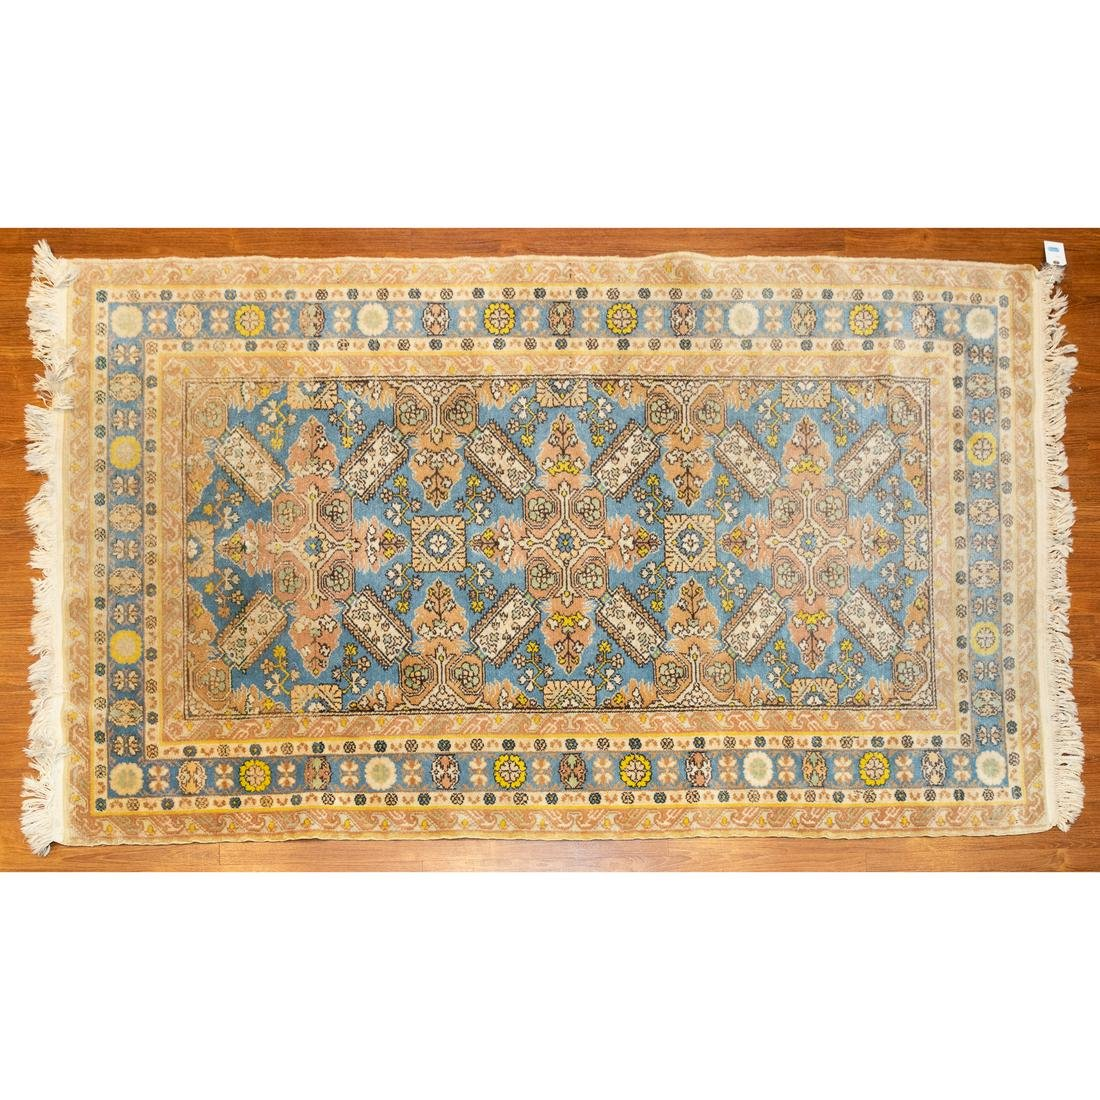 Turkish Kazak Design Rug, 4.2 x 8